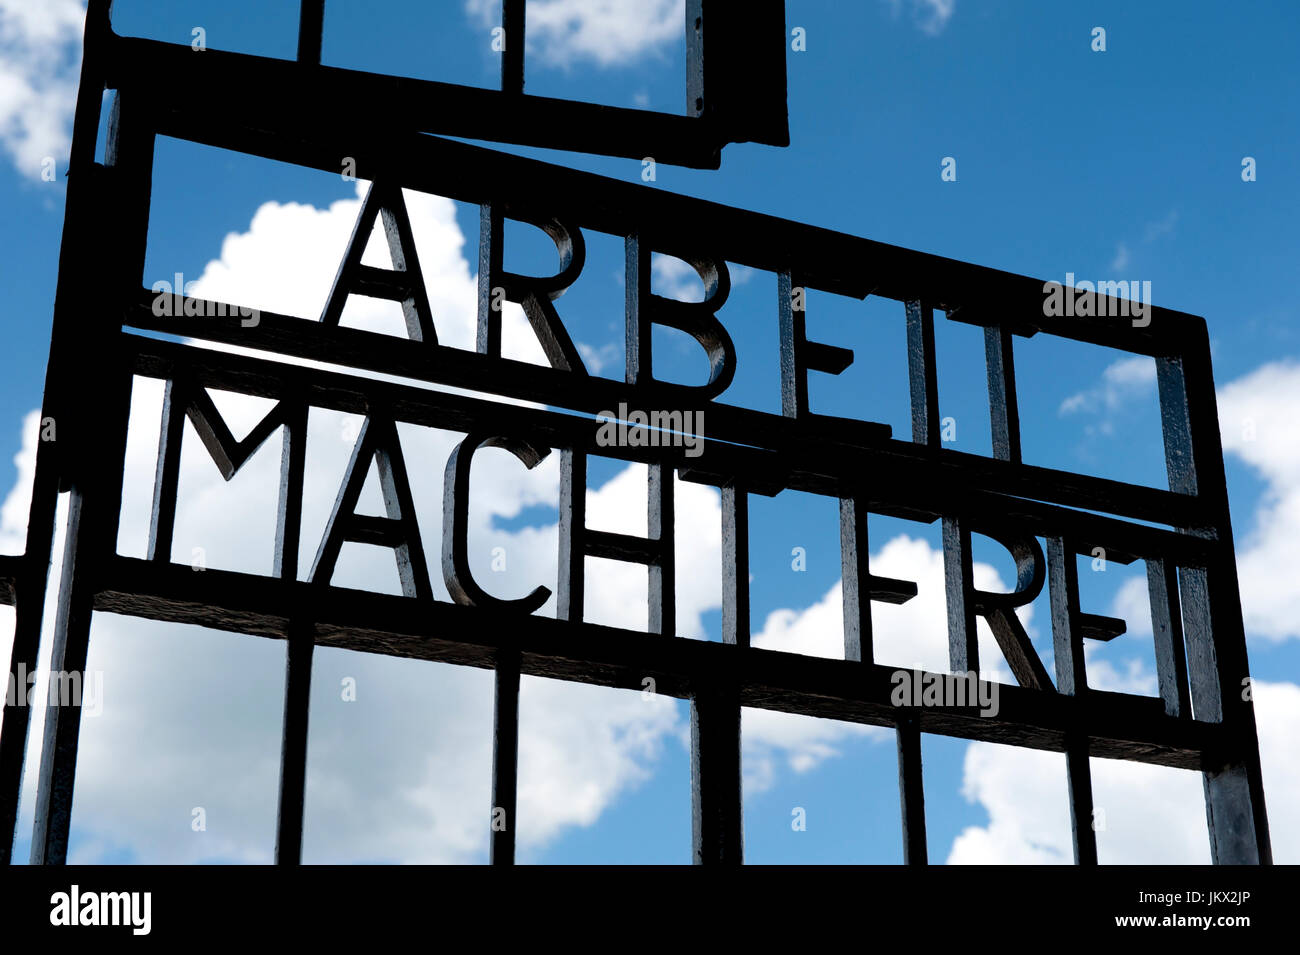 Arbeit Macht Frei iron gate at the entrance to Sachsenhausen Concentration Camp, Oranienburg, Germany - Stock Image